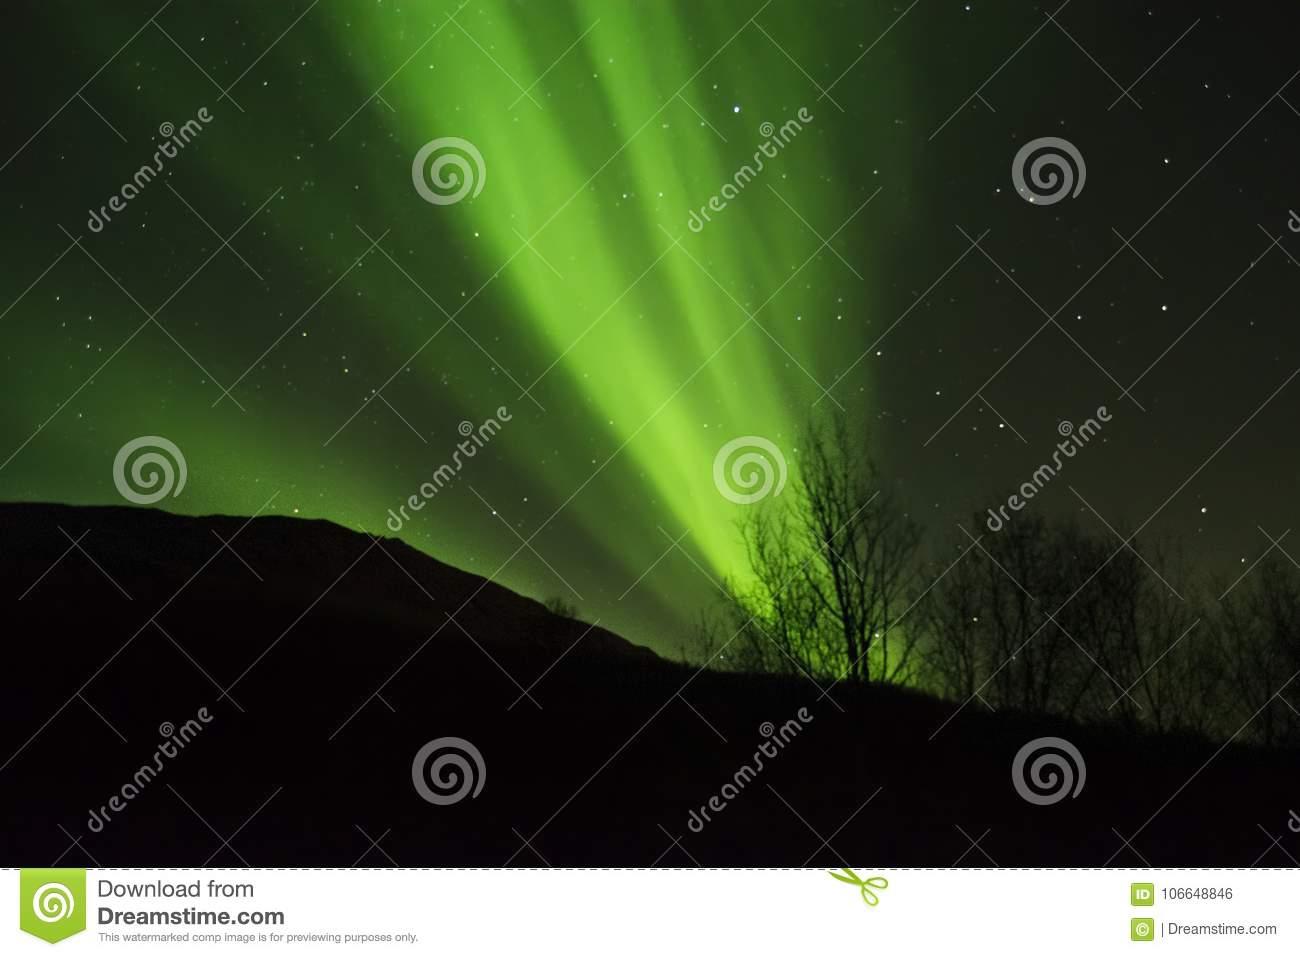 GREEN NORTHERN LIGHTS IN THE ARCTIC SKY